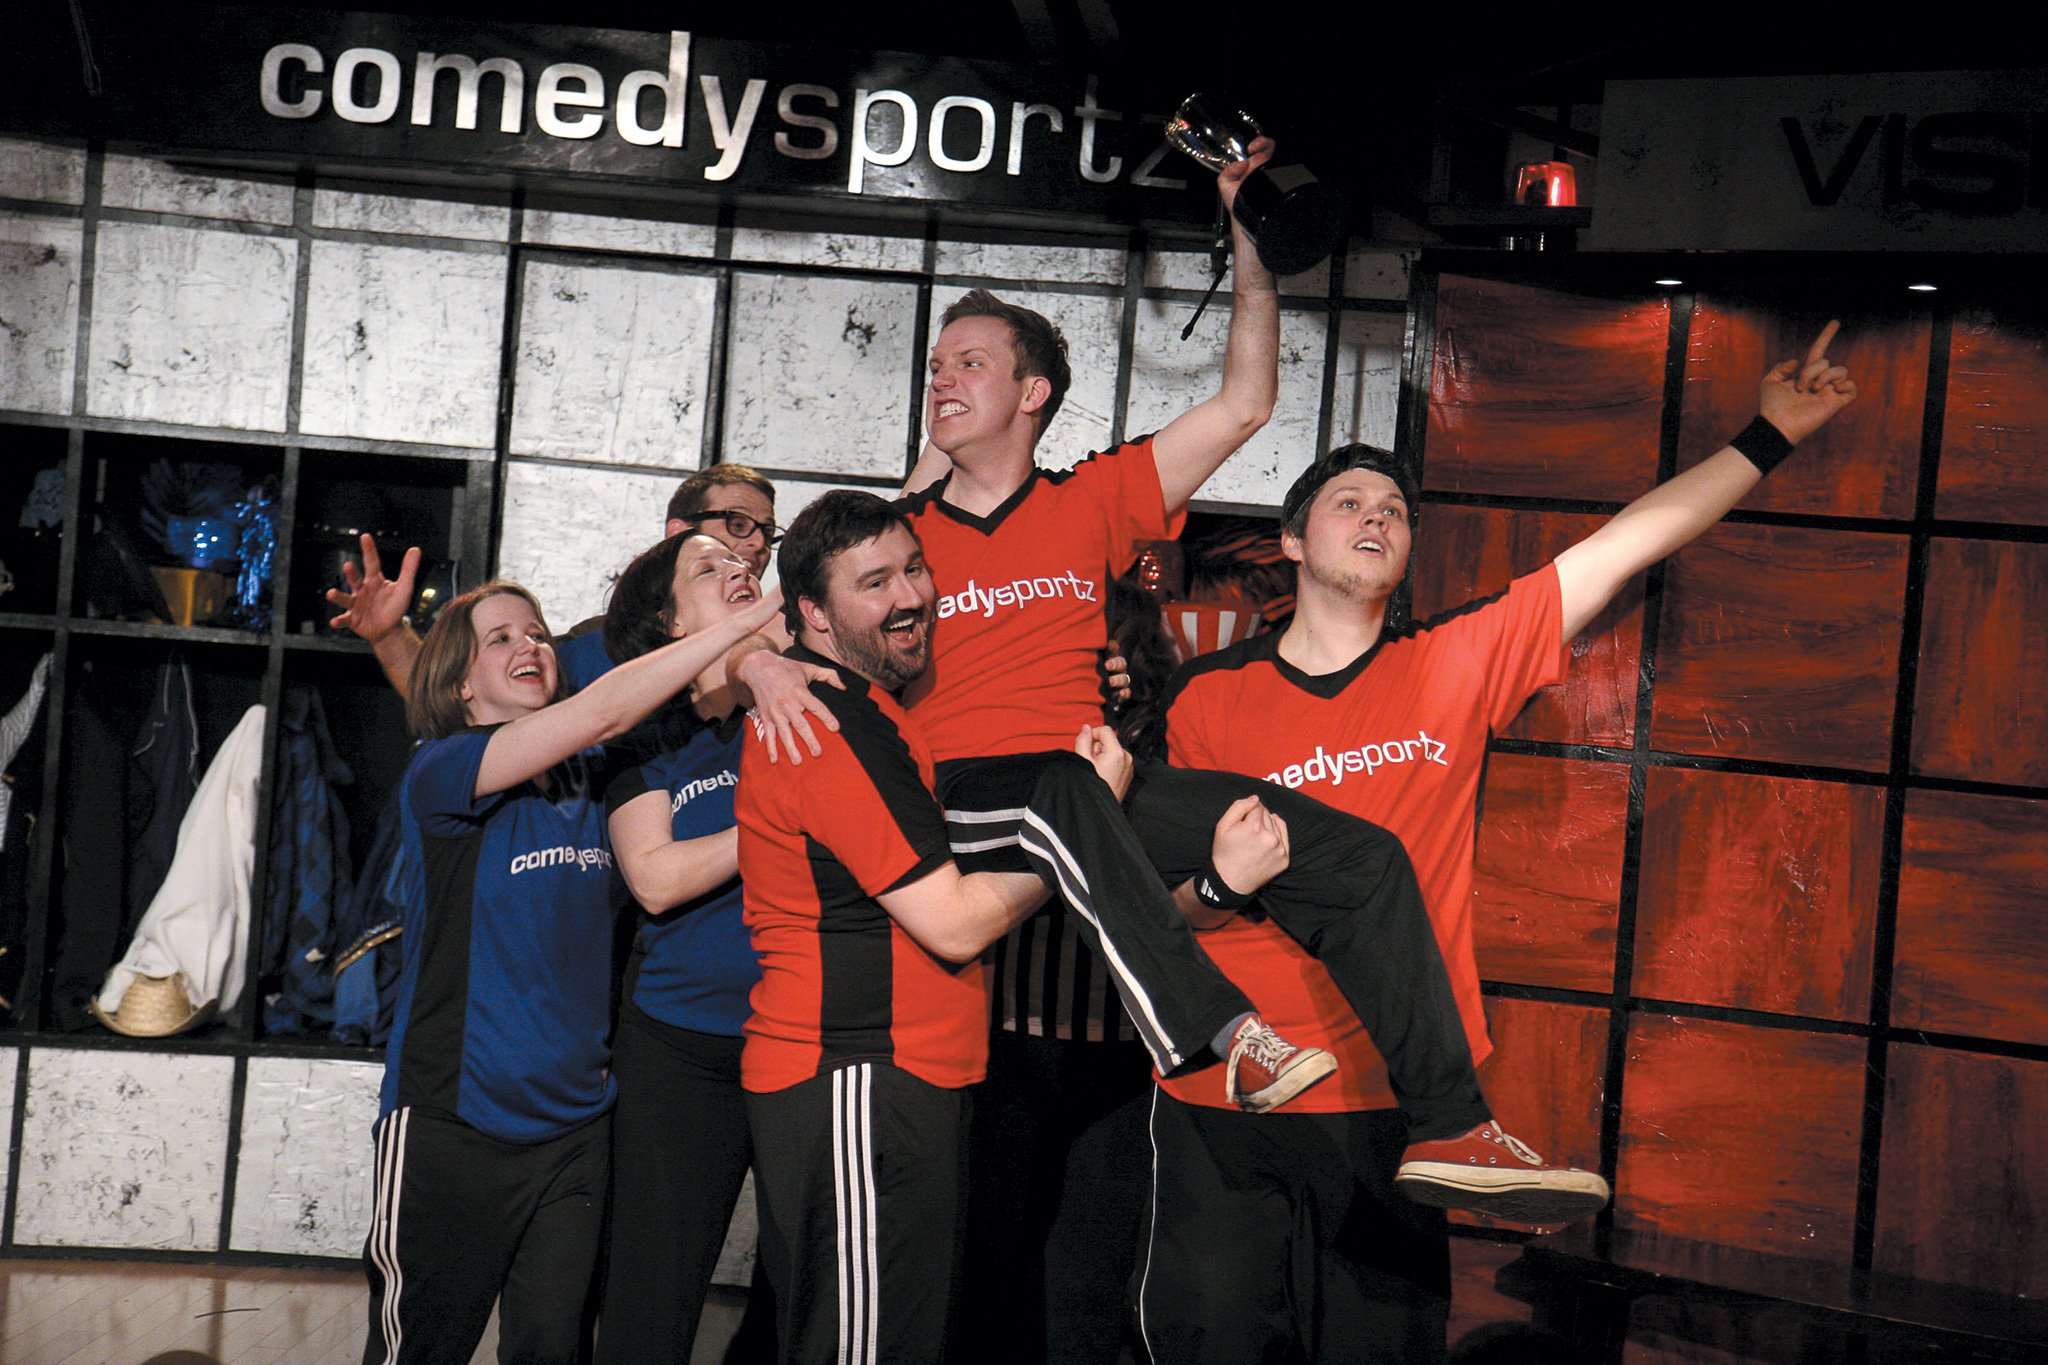 ComedySportz New Year's Eve